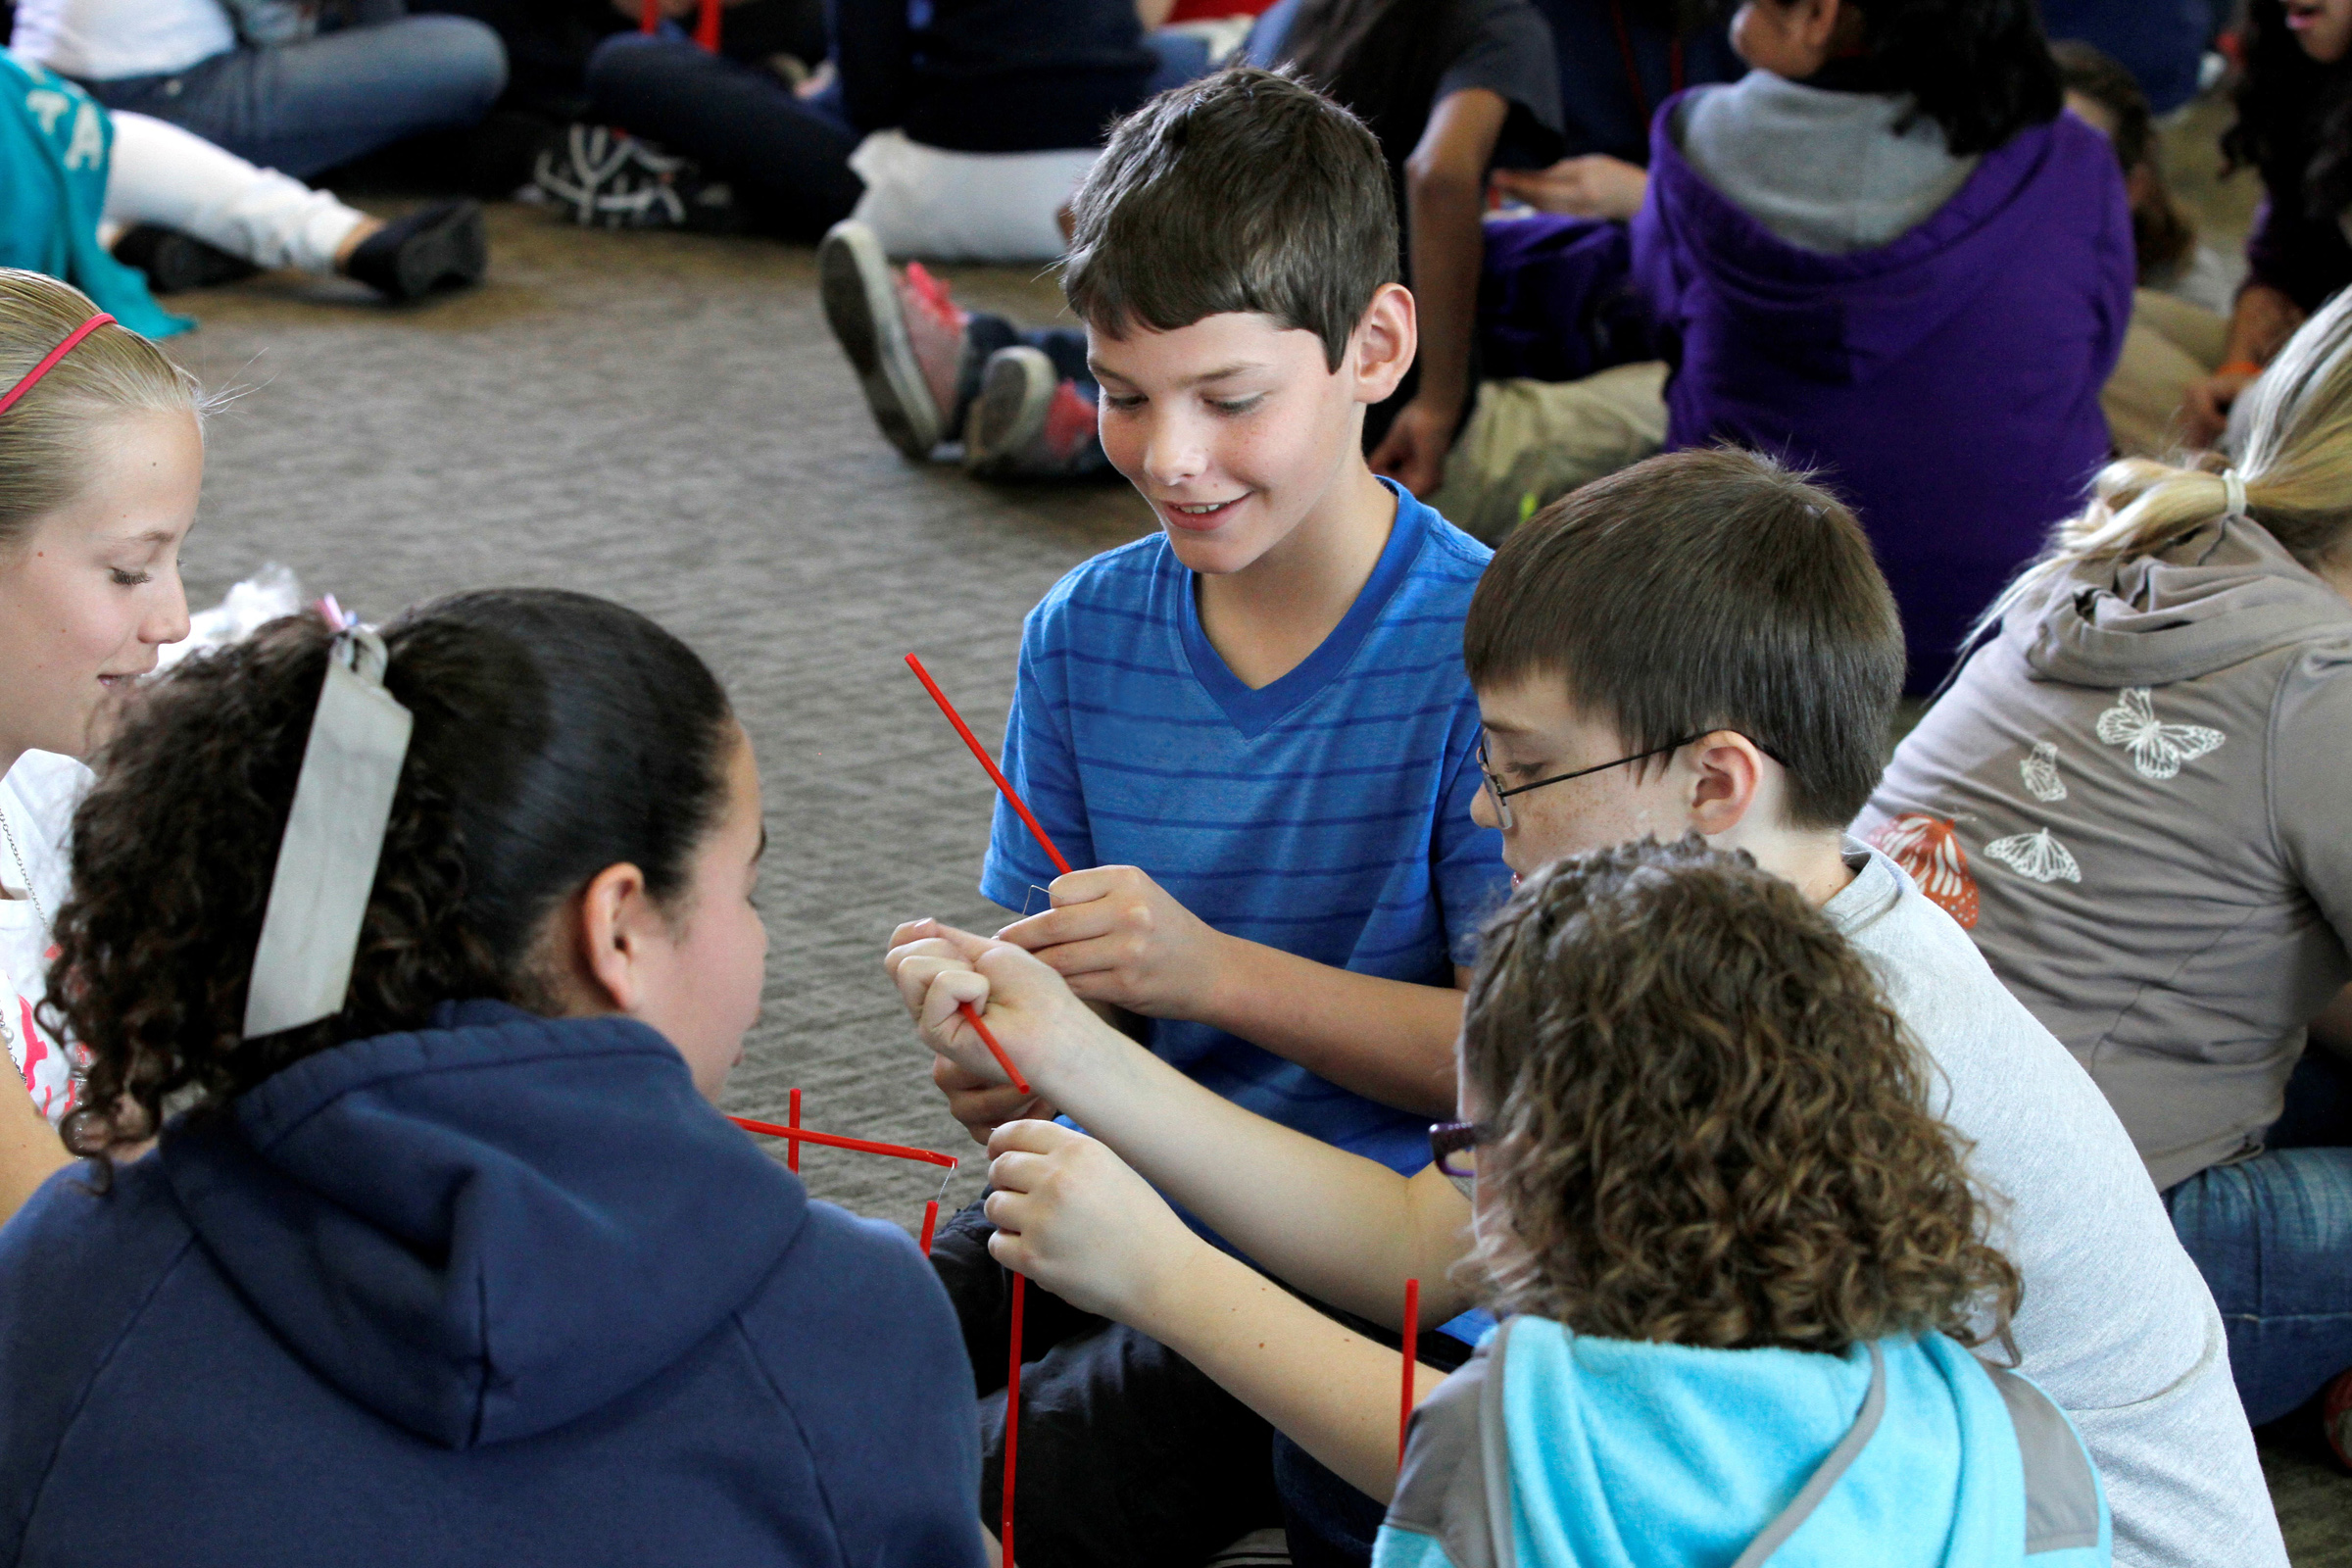 Students use plastic drinking straws to build towers that must withstand wind gusts during last year's Elementary Engineering Week. This year's event during March 24-28 will draw 2,000 Wasatch Front fifth- and sixth-graders. The week of activities is hosted by the University of Utah College of Engineering.